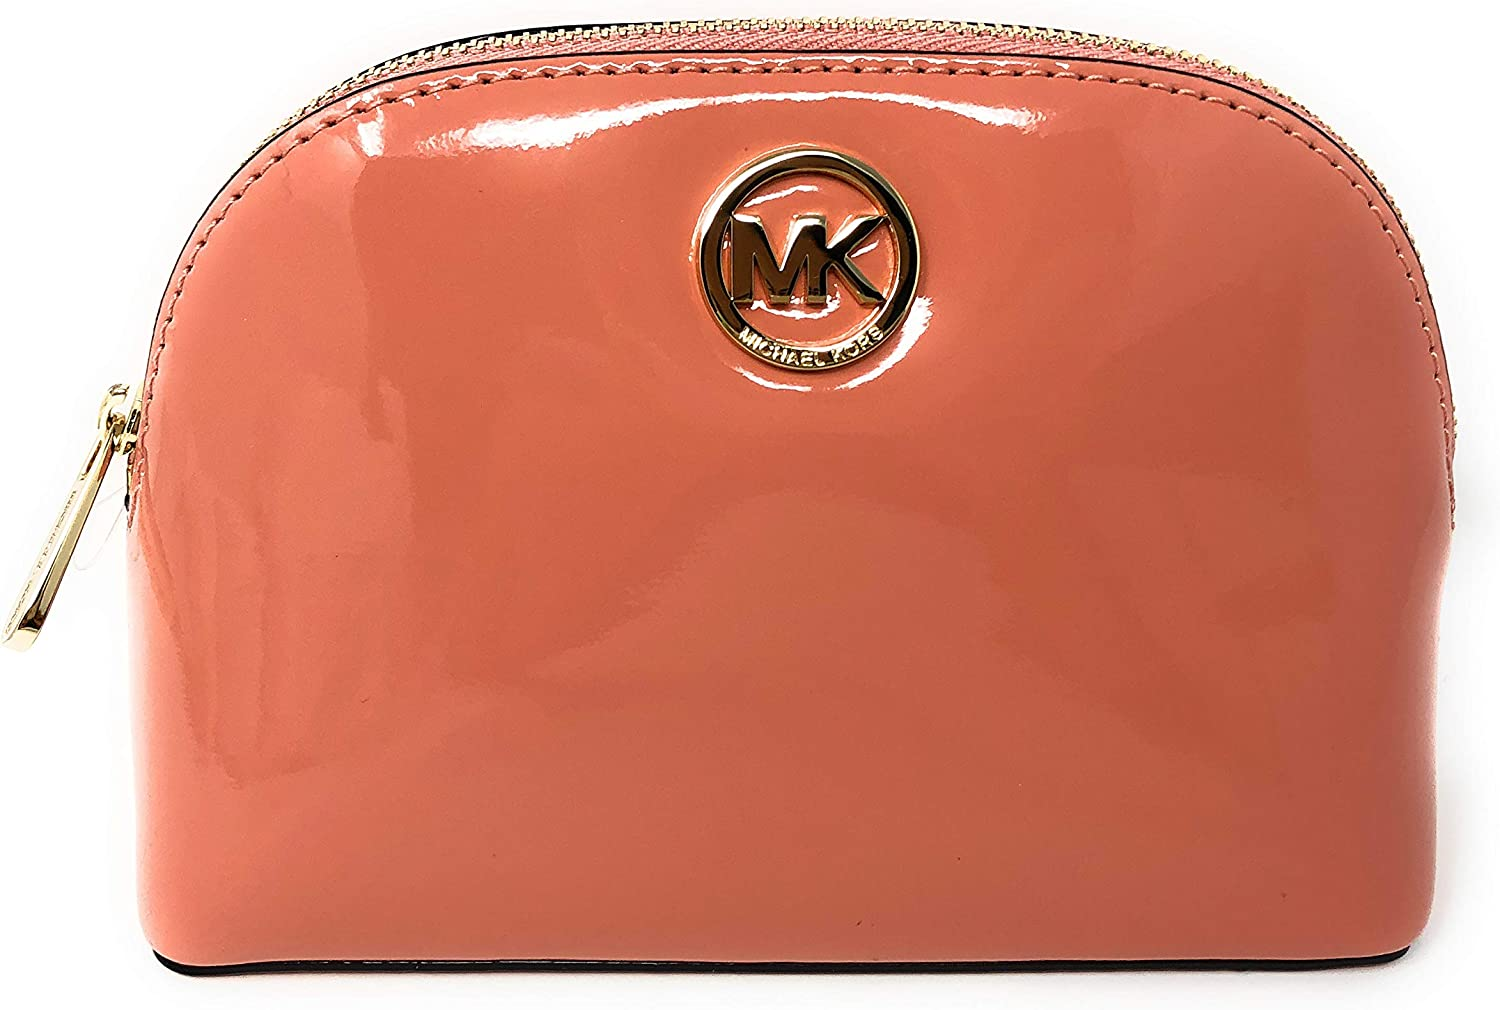 Michael Kors Fulton Patent Leather Cosmetic Travel Pouch in Peach